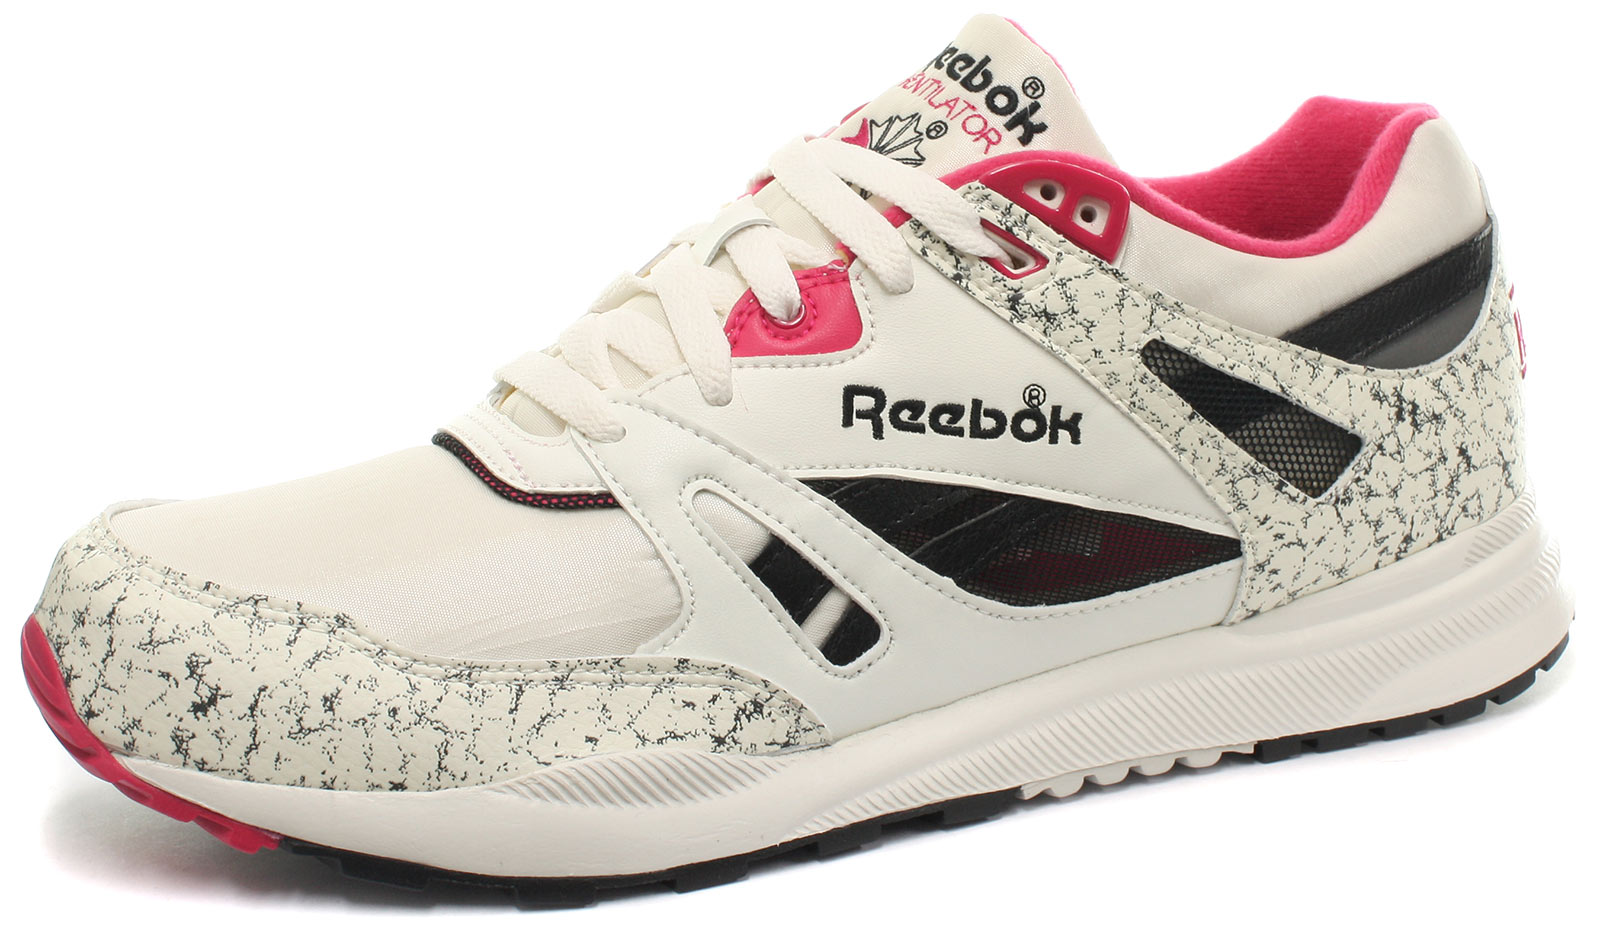 f767b58a23ee37 Image is loading New-Reebok-Classic-Ventilator-Vintage- .